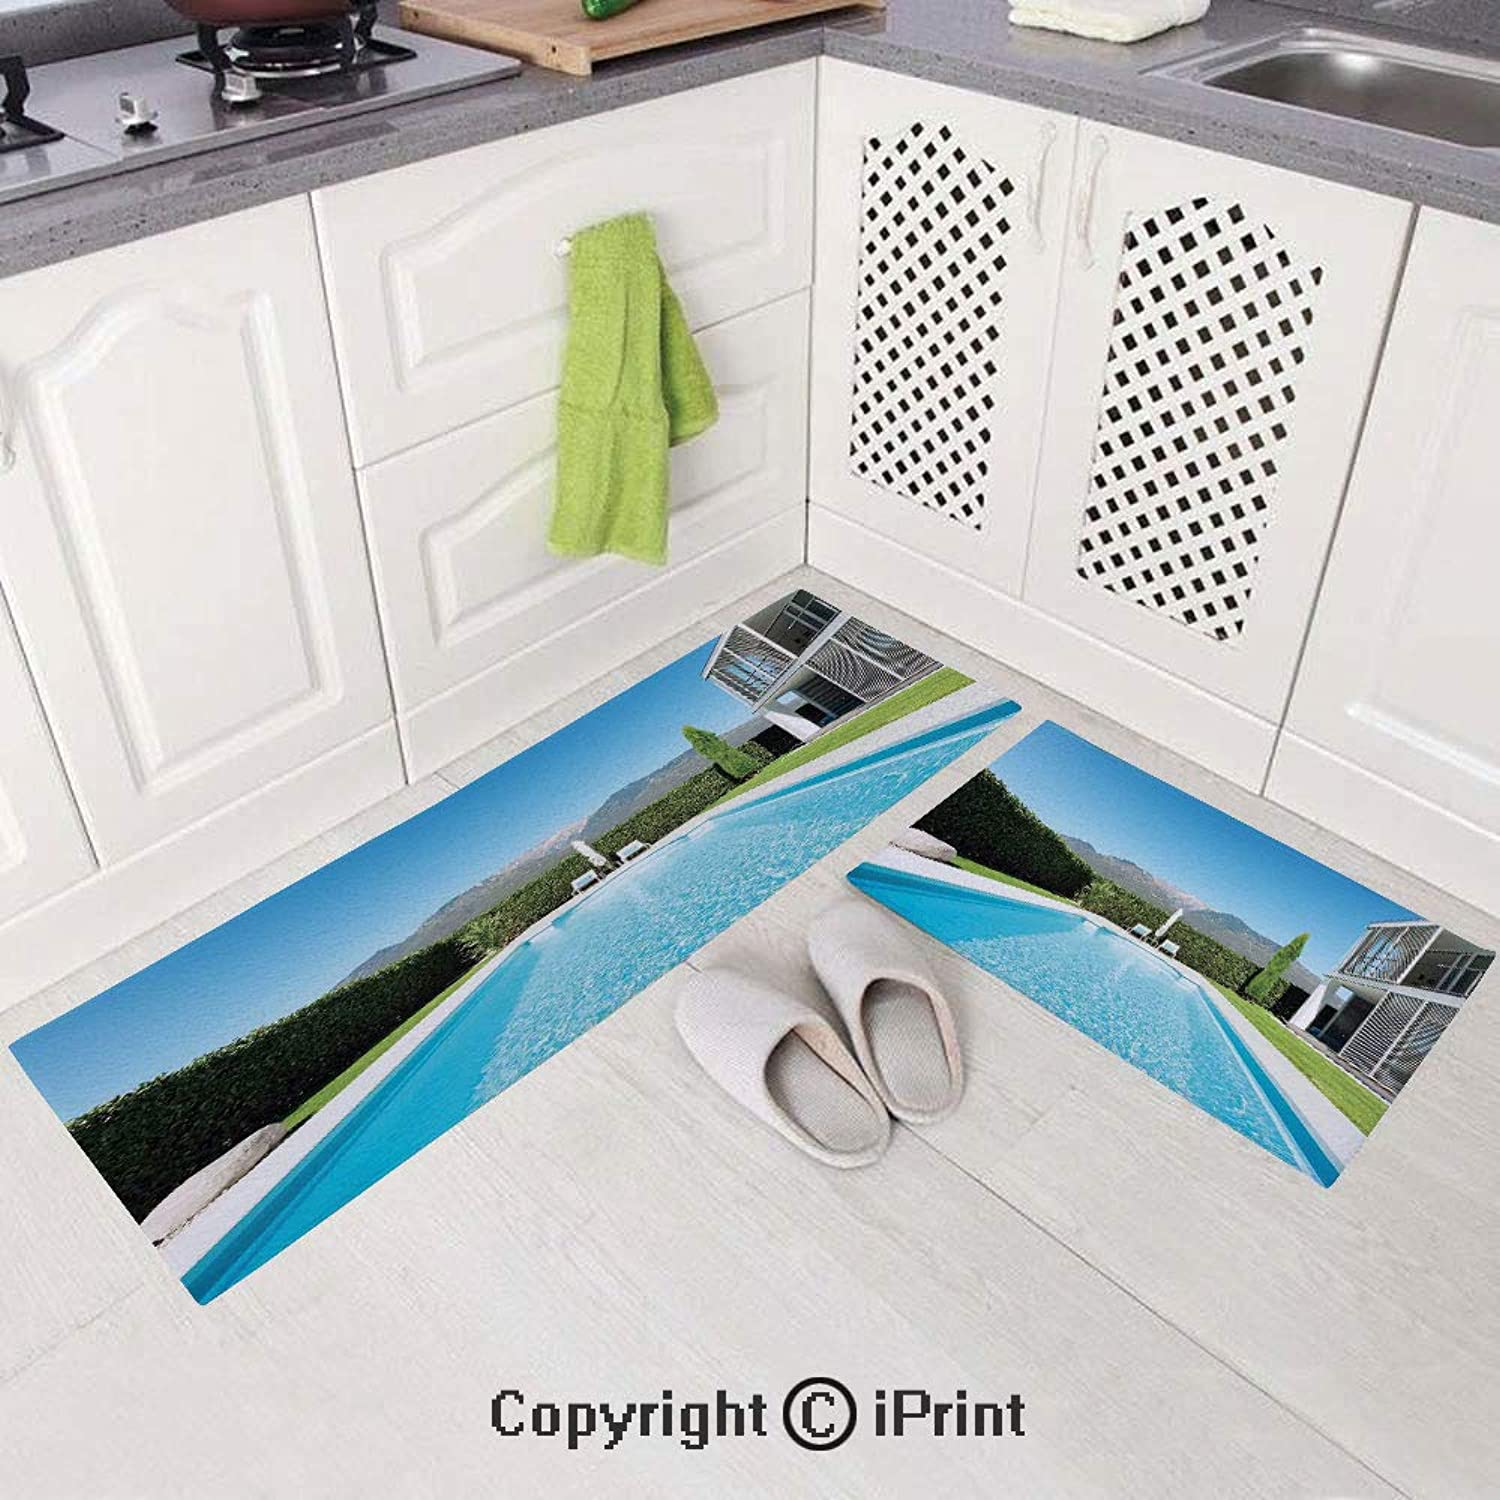 2 Piece Flannel Kitchen Rugs Cushioned Chef Soft (15 x47 +15 x23 ) Modern Villa with Pool View from The Garden Real Estate Contemporary Property,Non-Slip Rubber Back Floor Mats Washable Doormat